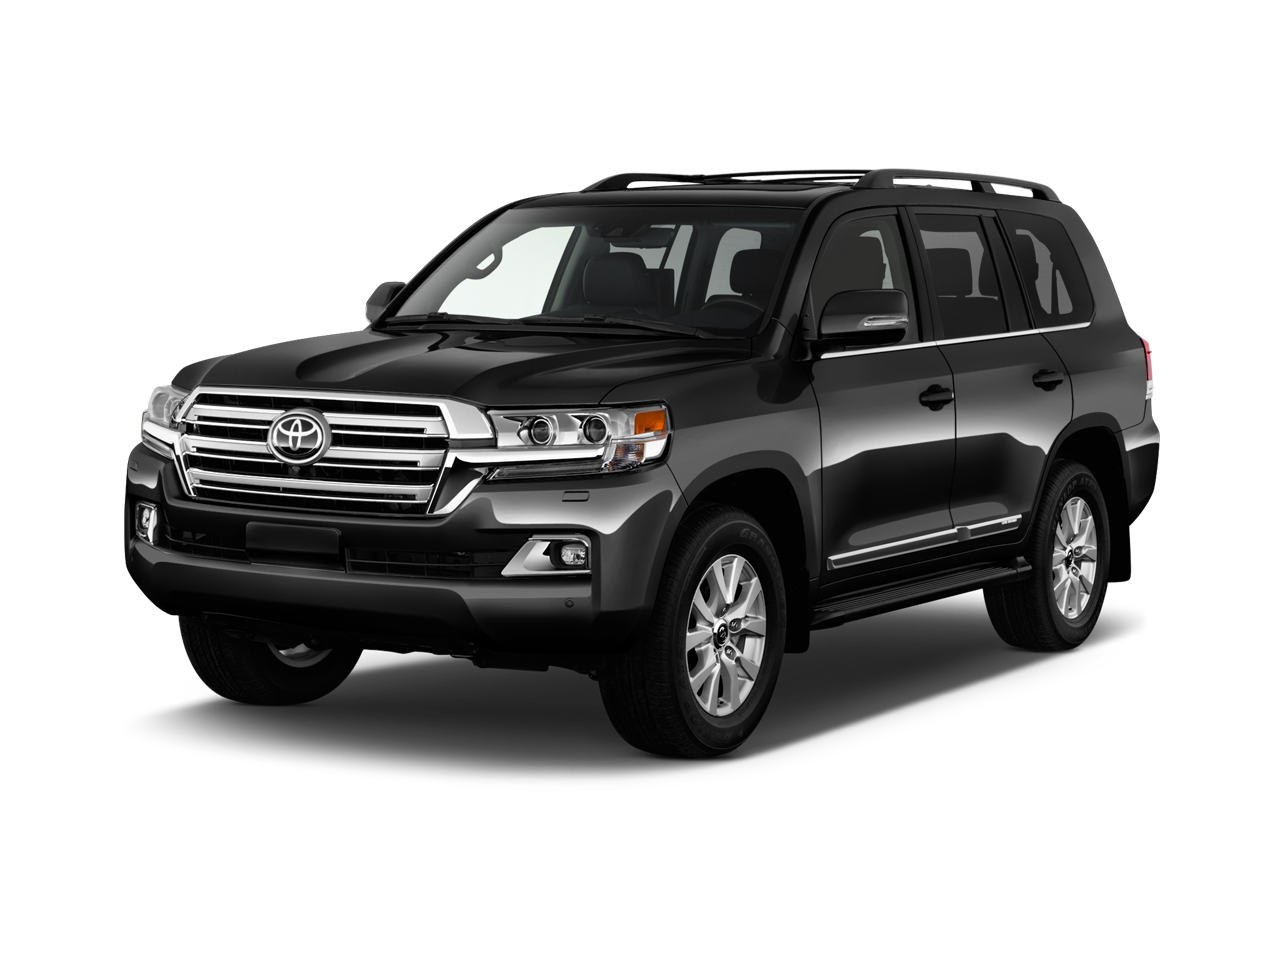 new 2016 land cruiser for sale. Black Bedroom Furniture Sets. Home Design Ideas